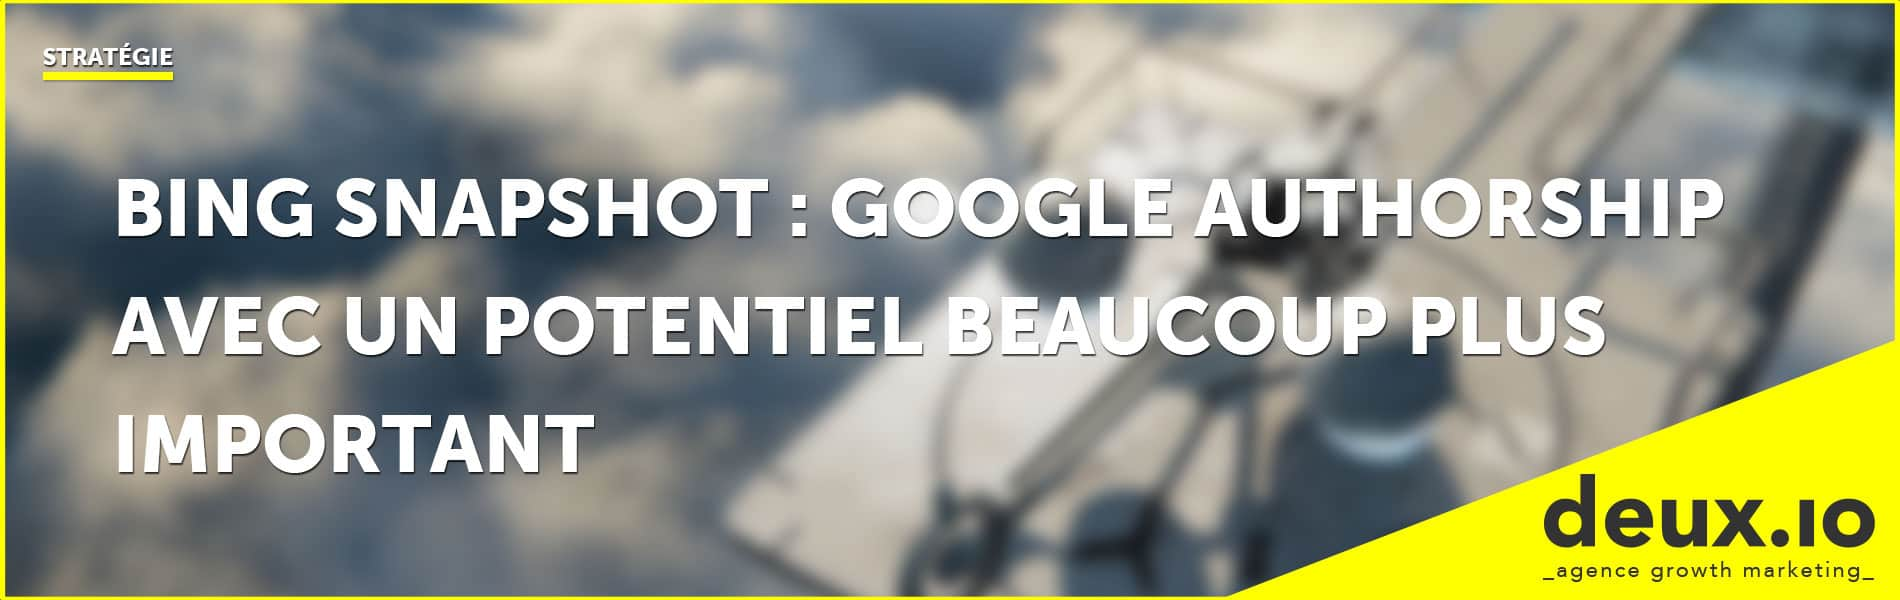 bing snapshot: google authorship avec un potentiel beaucoup plus important